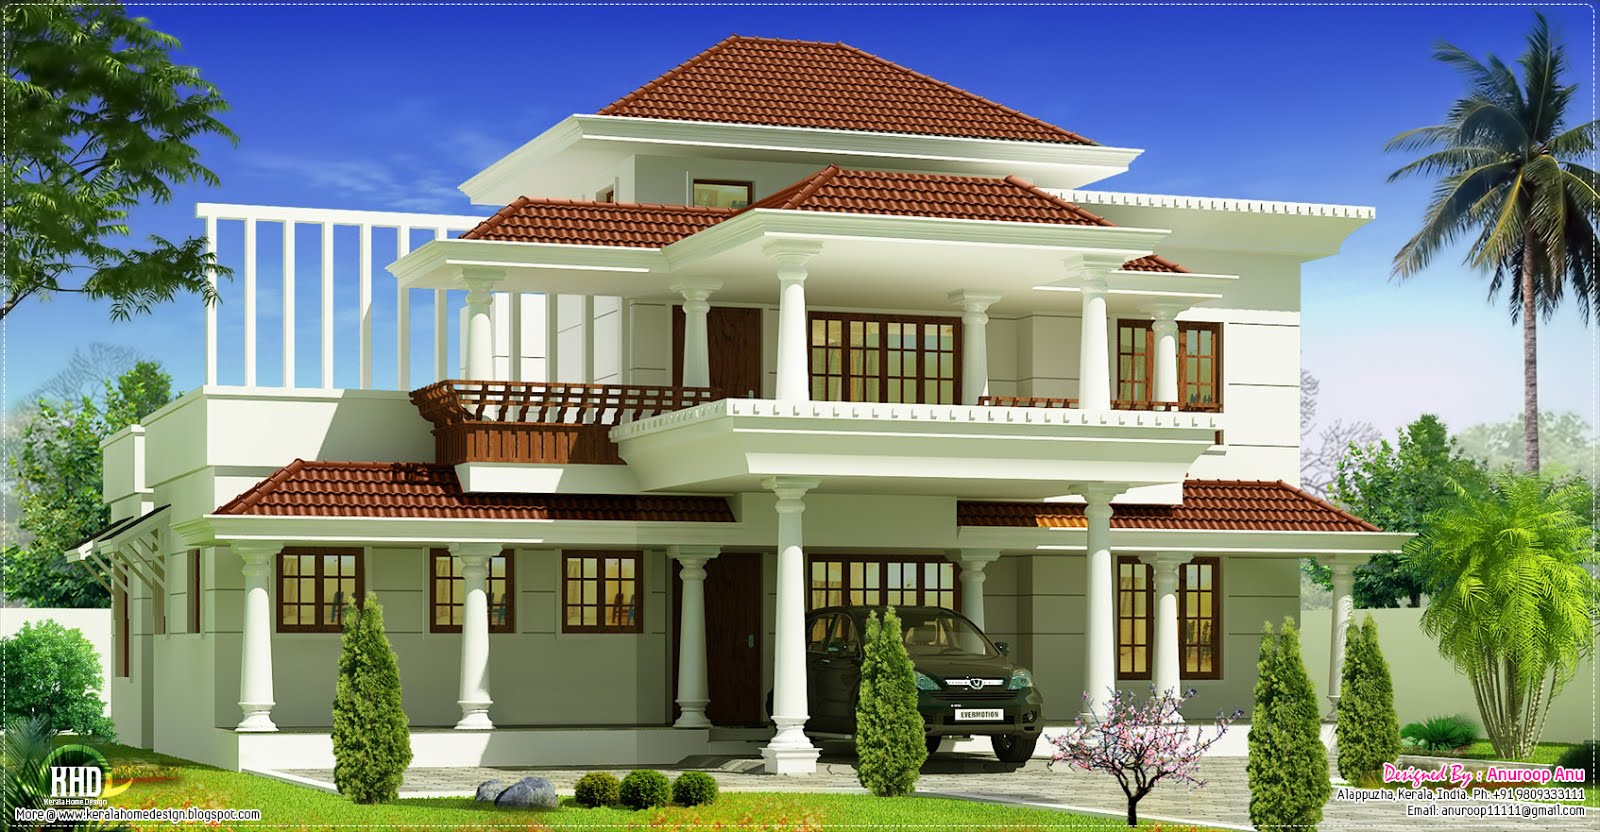 Kerala house models houses plans designs for New home designs kerala